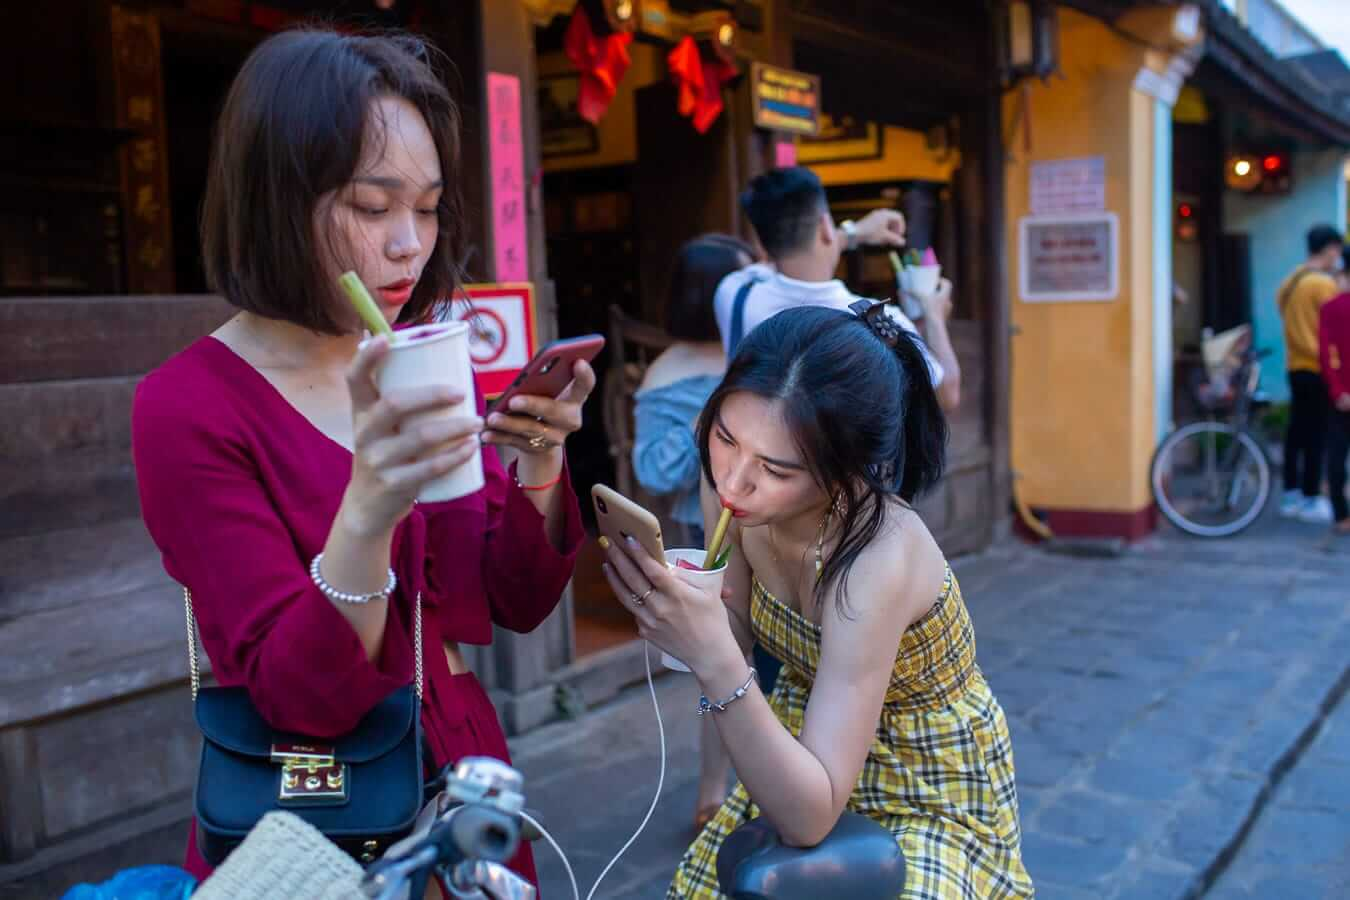 Girls updating their Instagram - Instagram Guide to Hoi An